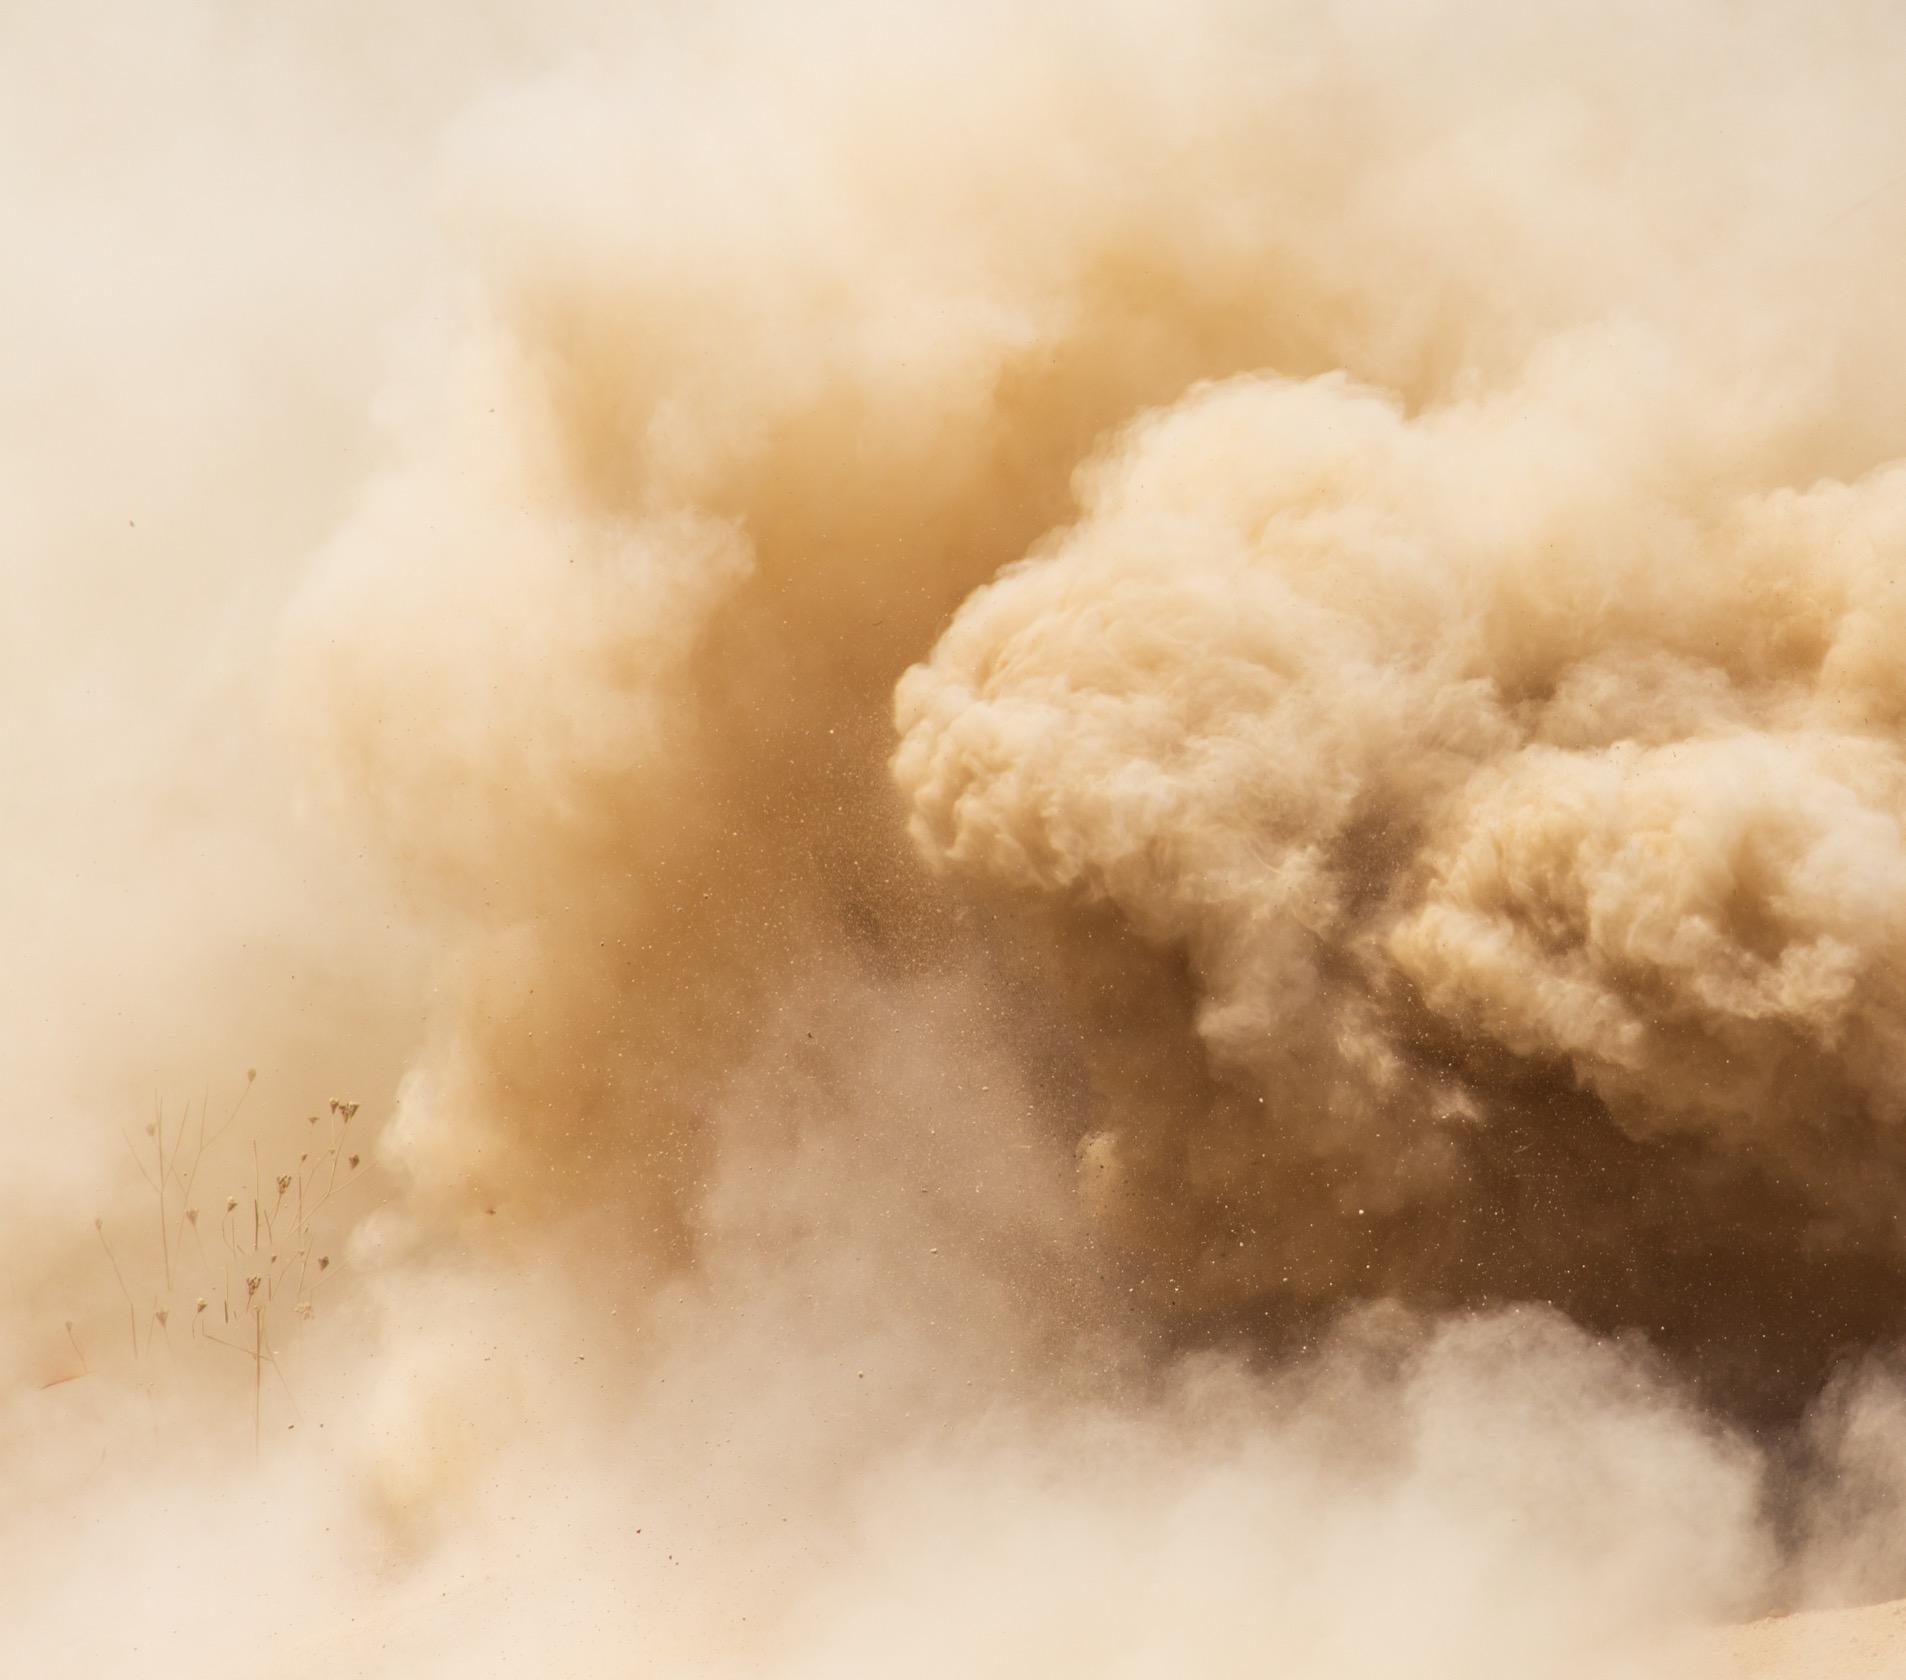 Clouds of dust and dirt rolling through the air.